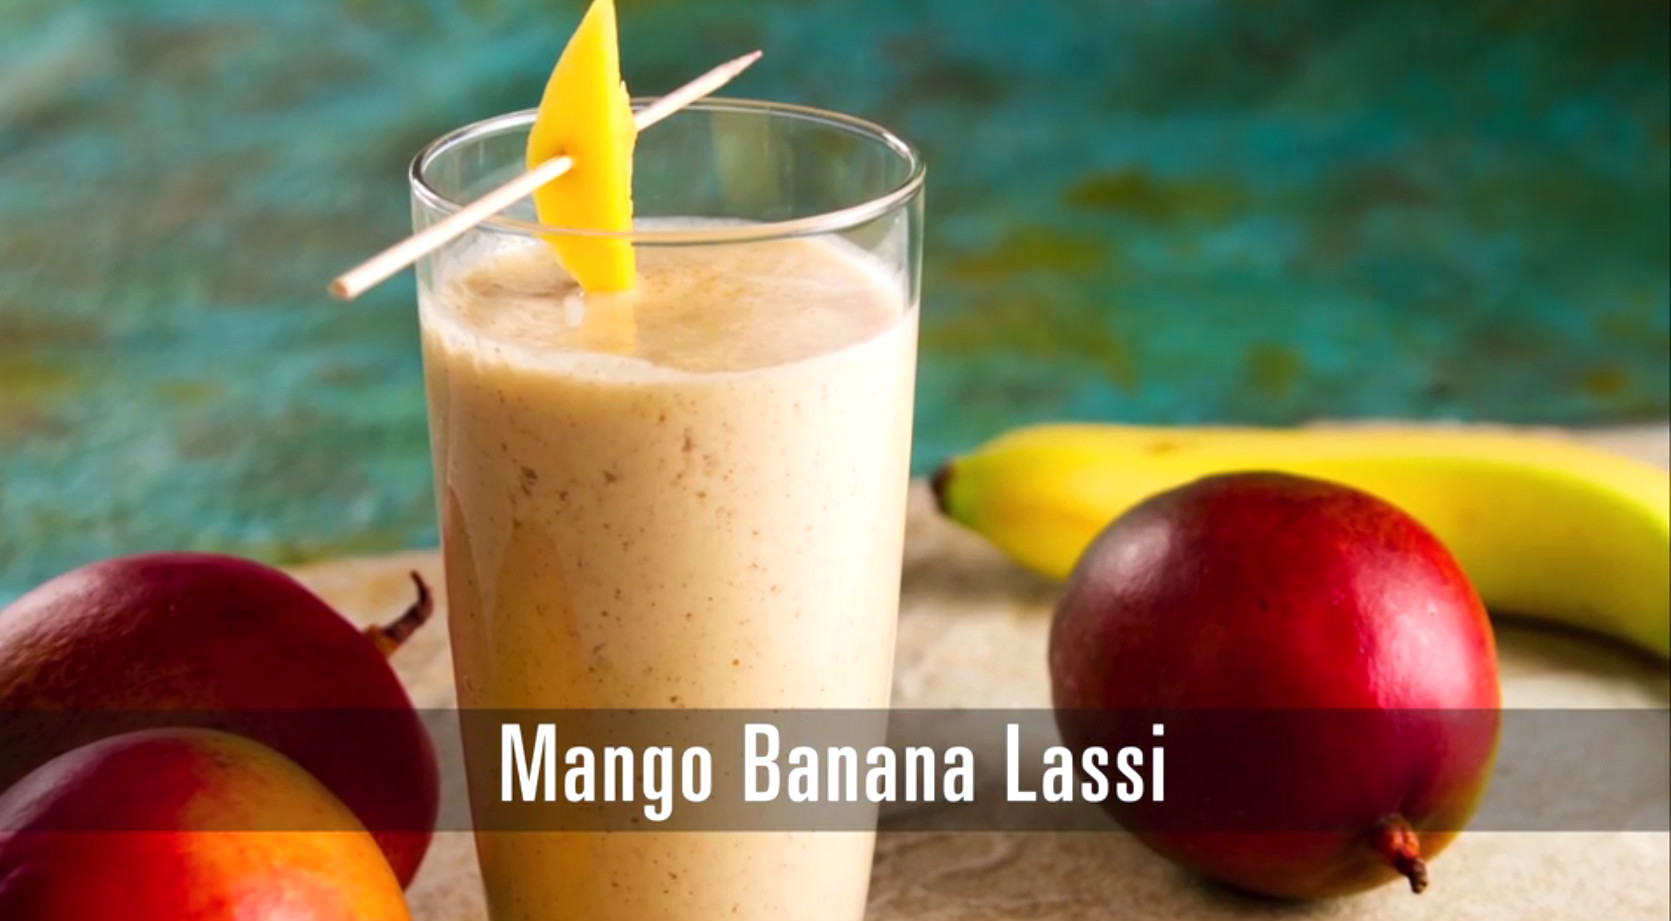 It's summertime, and that means everyone could use a fruit lassi to cool off with! This traditional Indian dessert combines fresh fruit, spices, and yogurt and then blends with ice to create a fruit smoothie.